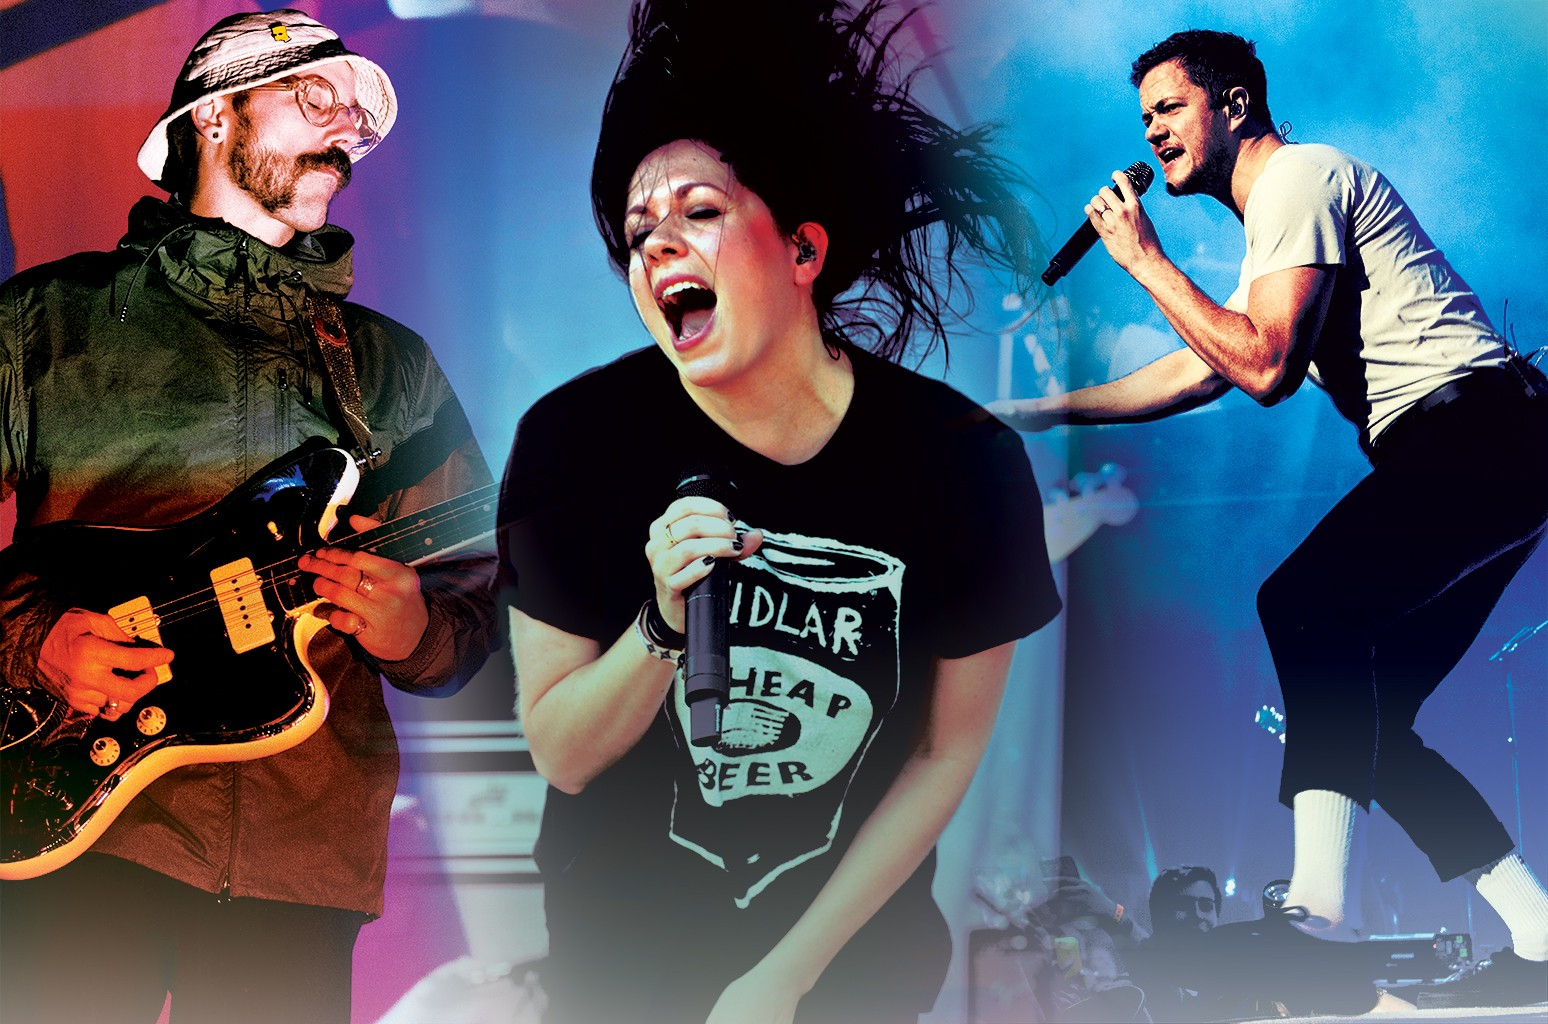 John Gourley from Portugal. The Man, K.Flay and Dan Reynolds from Imagine Dragons.